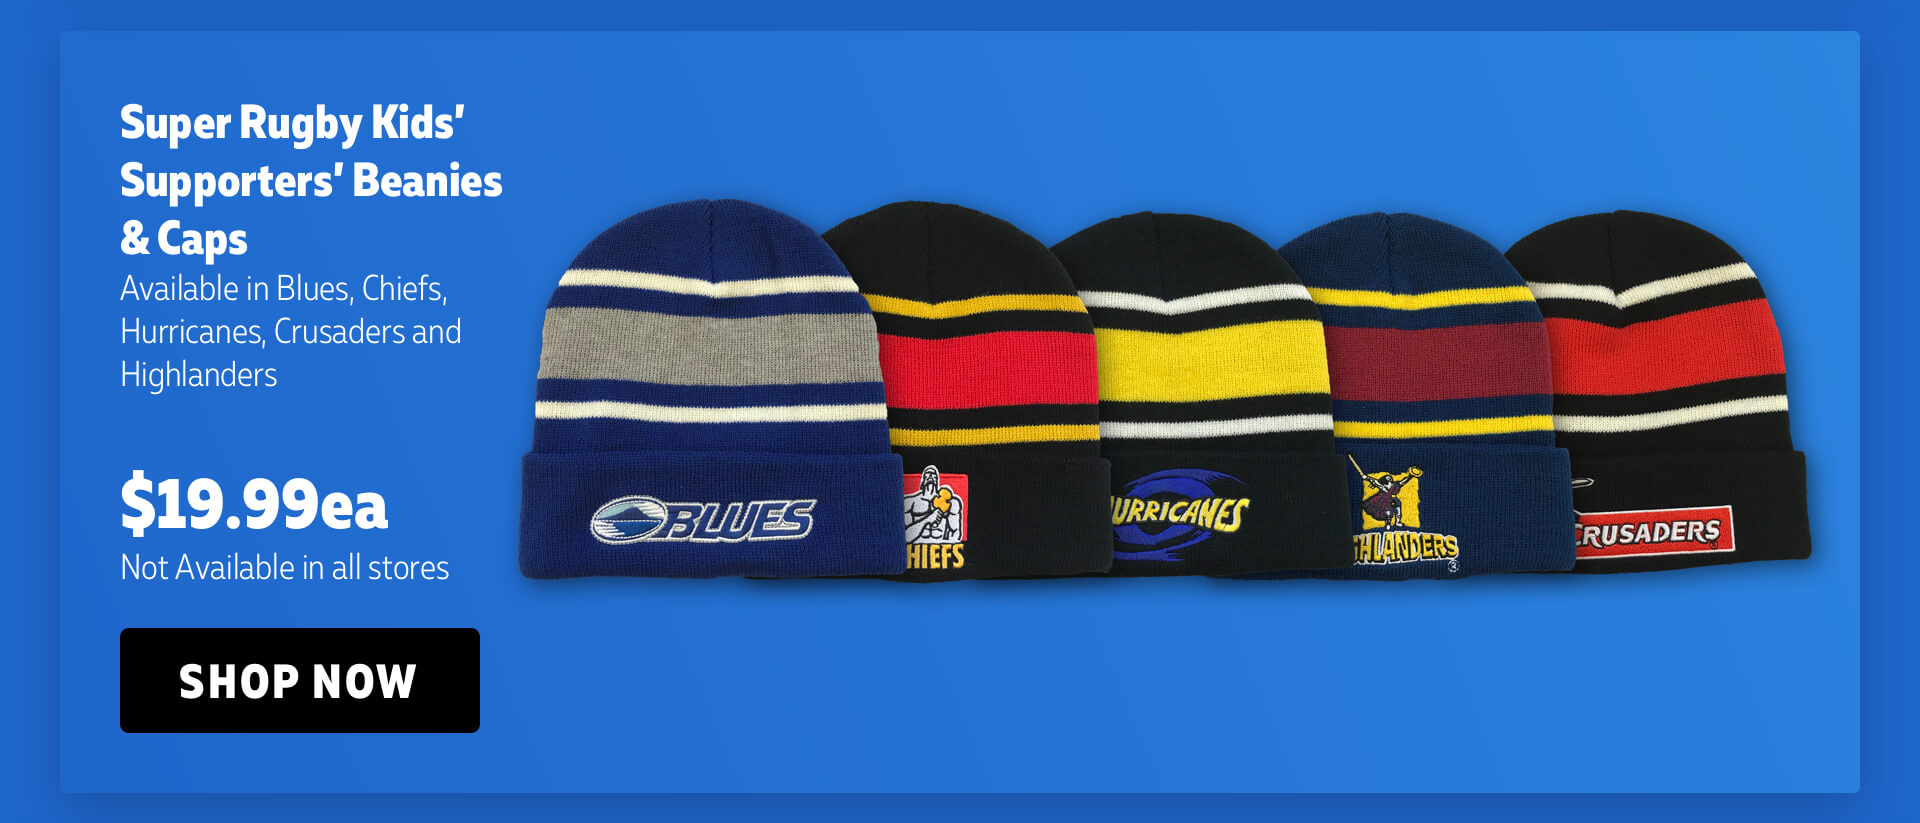 super-rugby-kids-supporters-beanies--caps